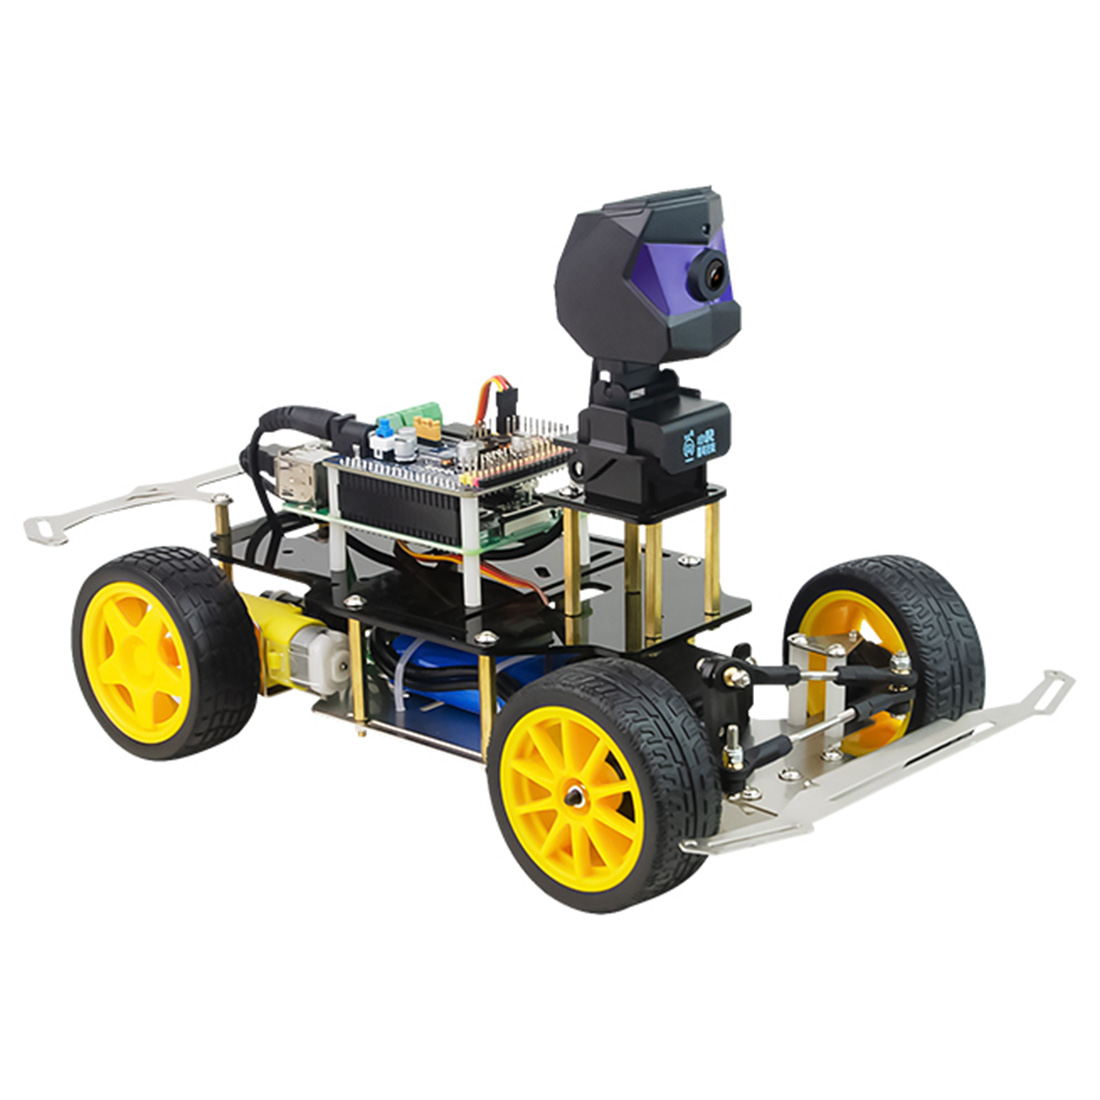 Donkey Car Smart AI Line Follower Robot Opensource DIY Self Driving Platform For Raspberry Pi RC Car Education Toy Gift For Kid